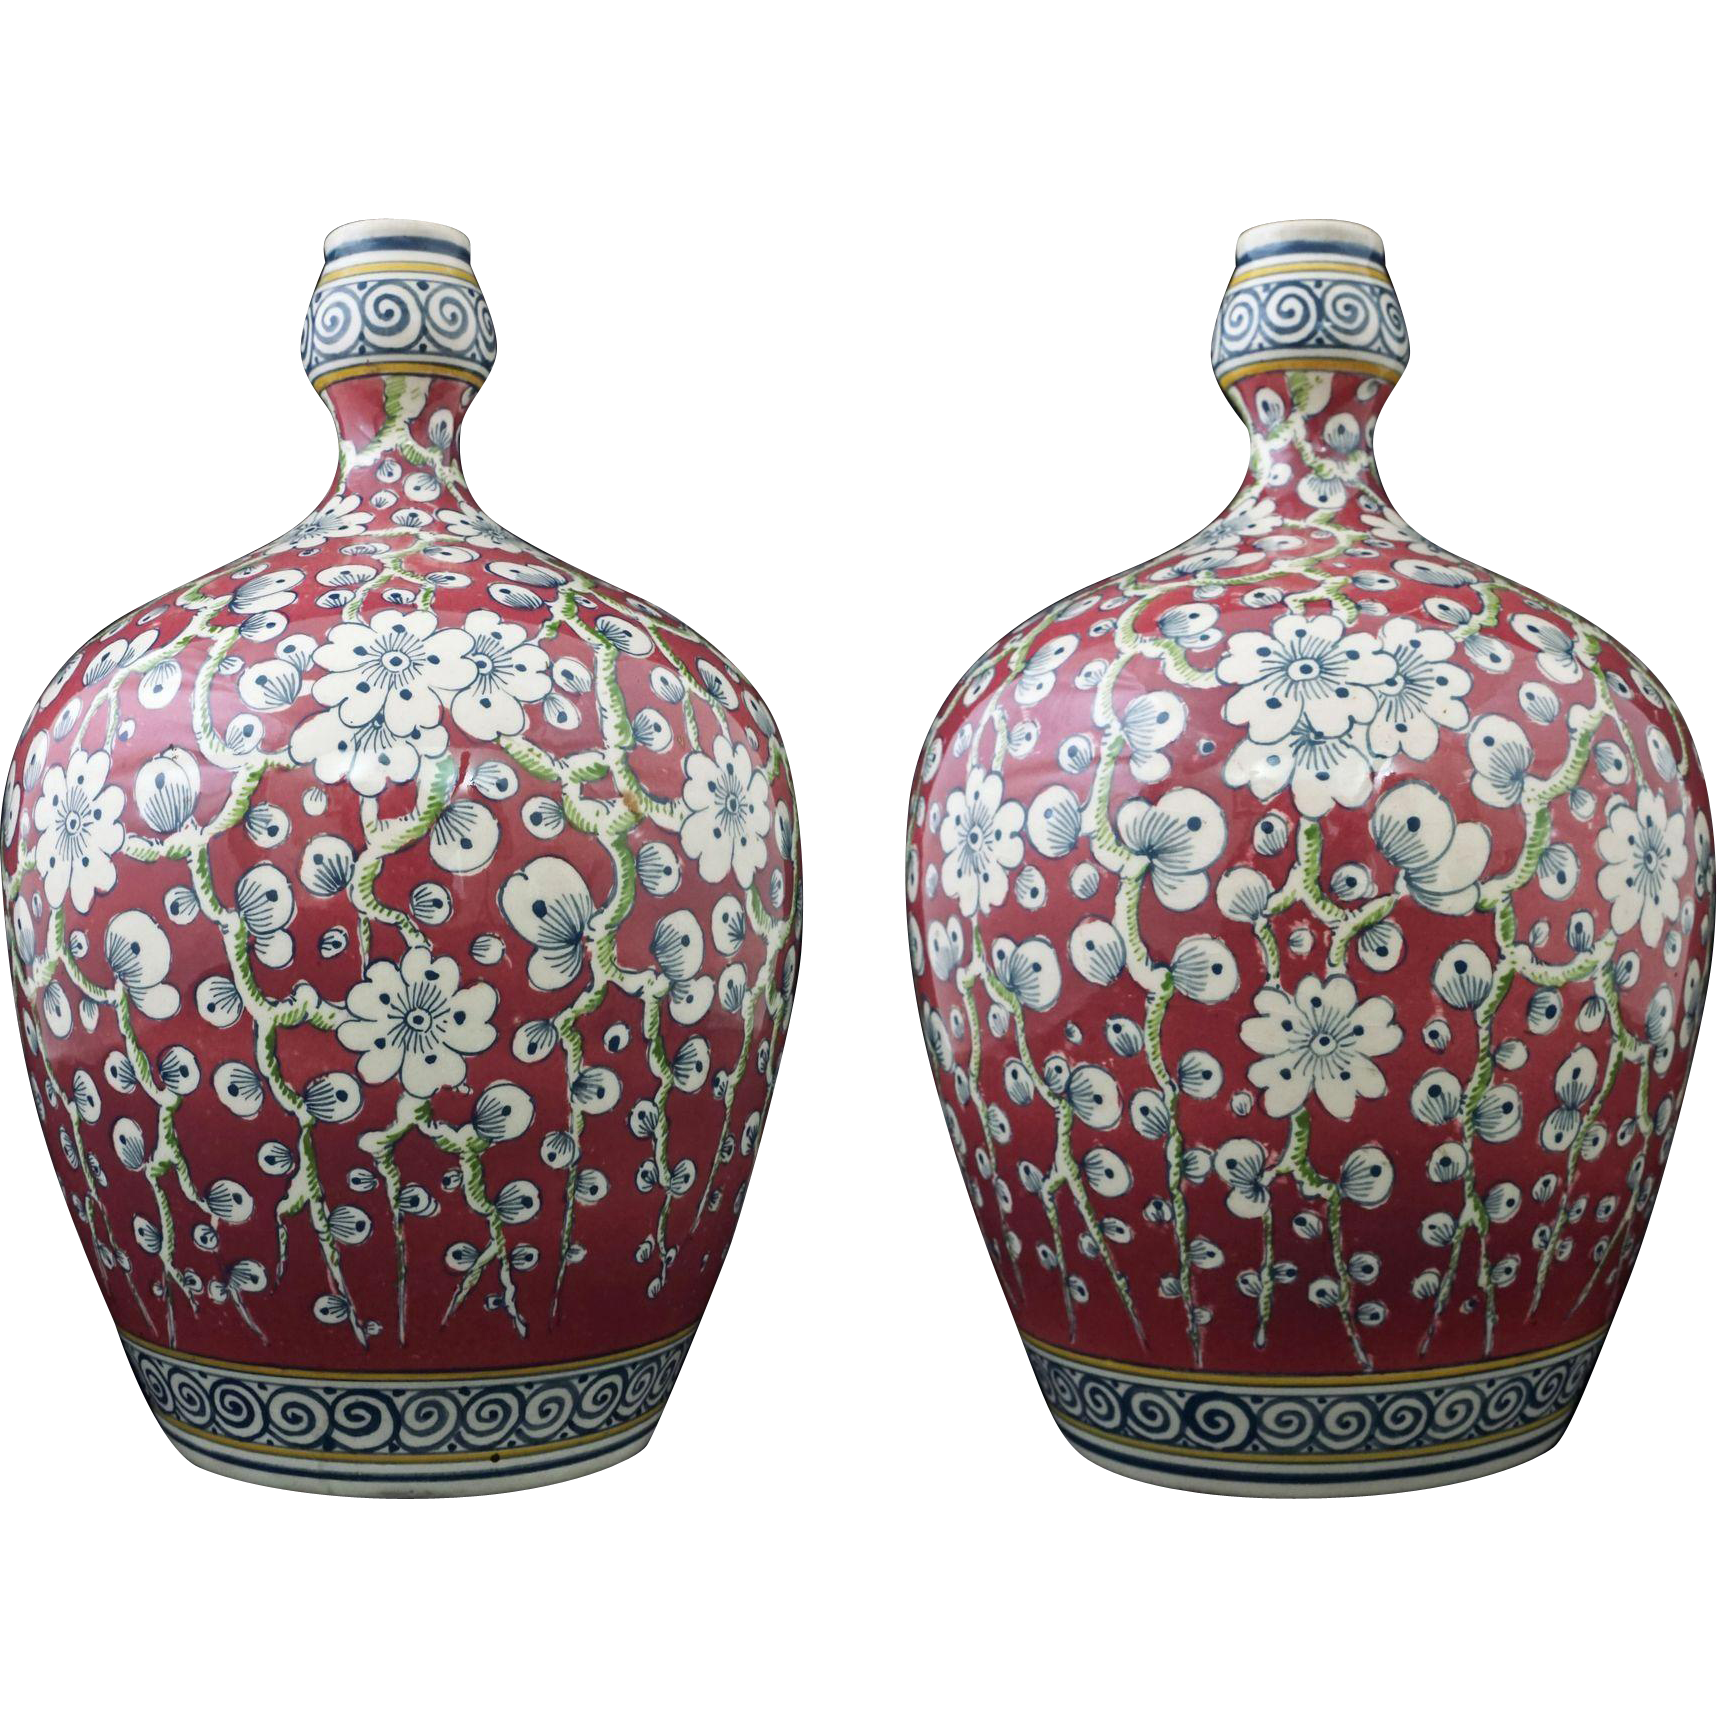 Pair of Dutch Ivora Gouda High Glaze Pottery Vases / Jars Art & Crafts Style Deco Period Factory Marked - c. 1920-1926, Holland